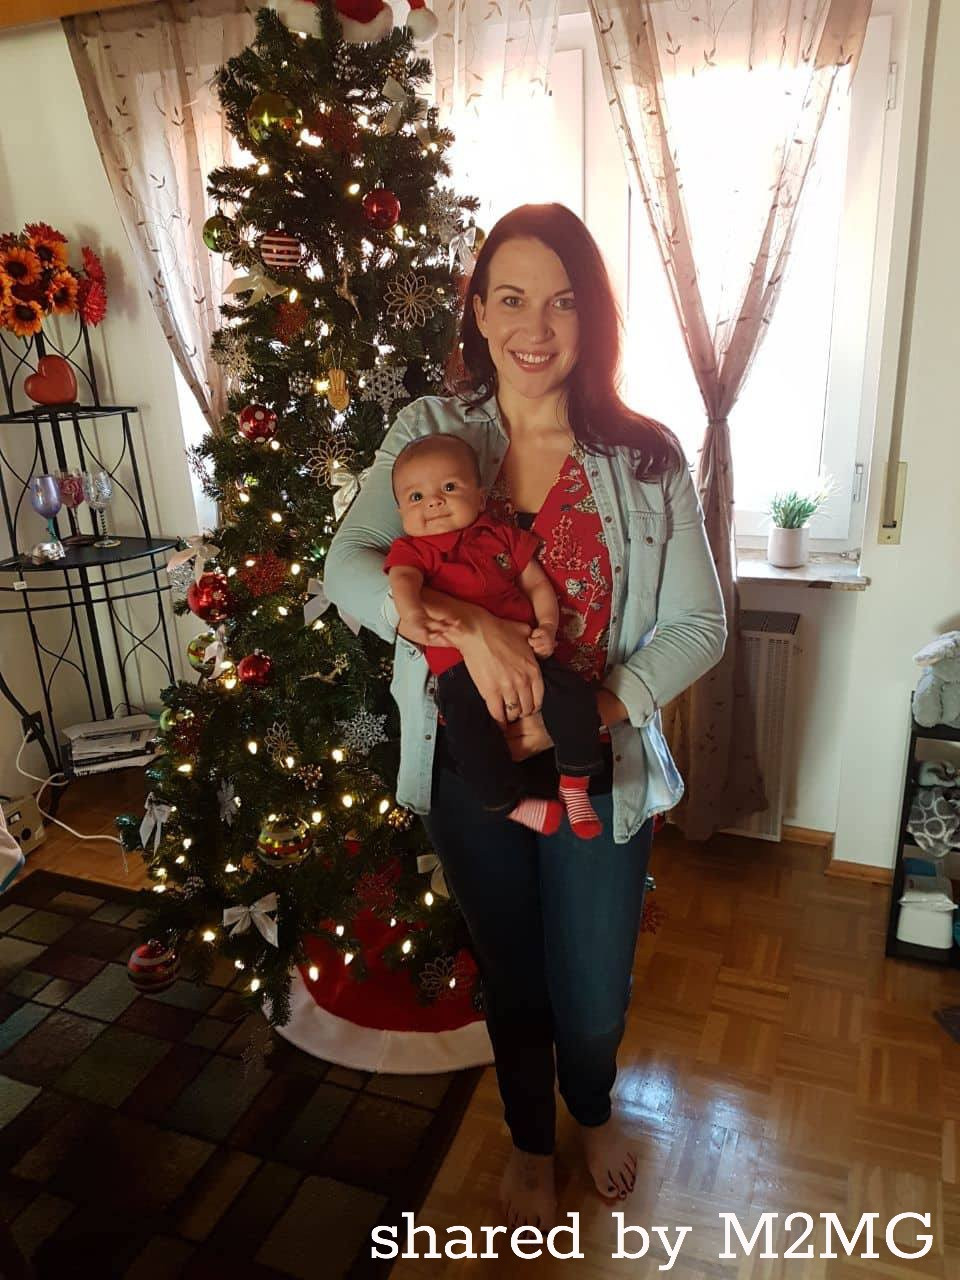 photo of mom and baby by a Christmas tree